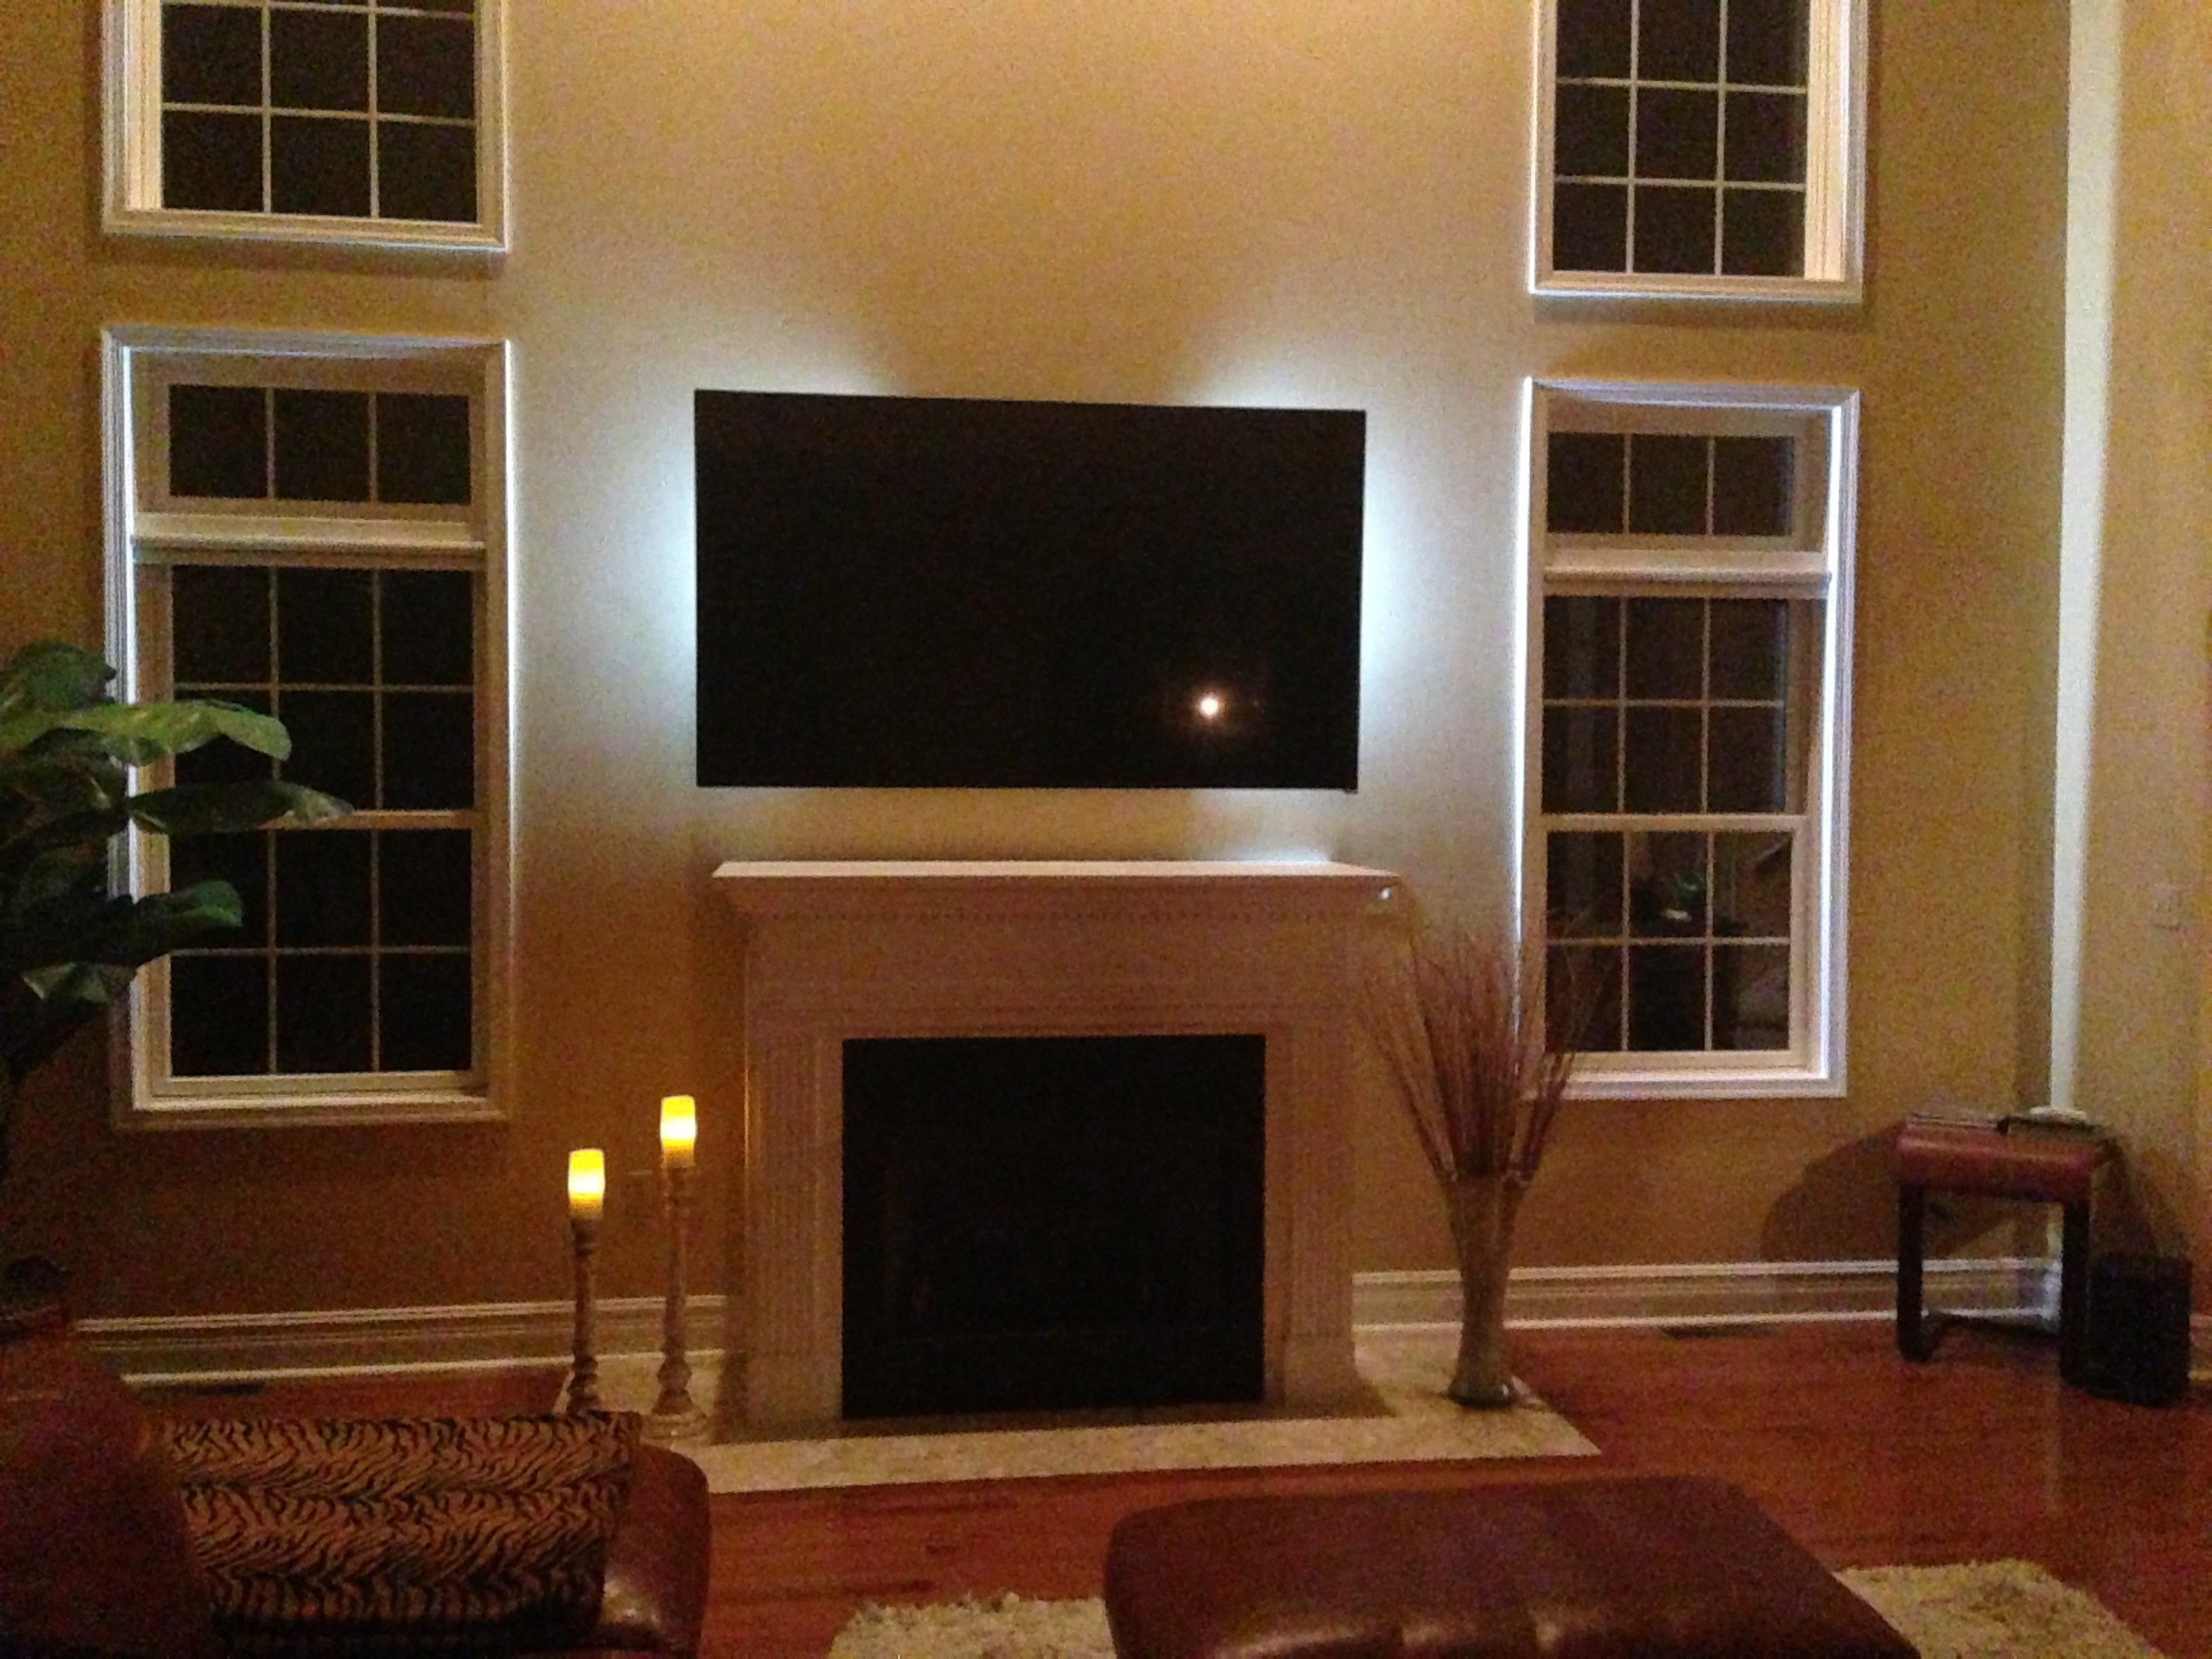 Flat Panel Over Fireplace Discomforting Page 7 Avs Forum Home Theater Discussions And Reviews